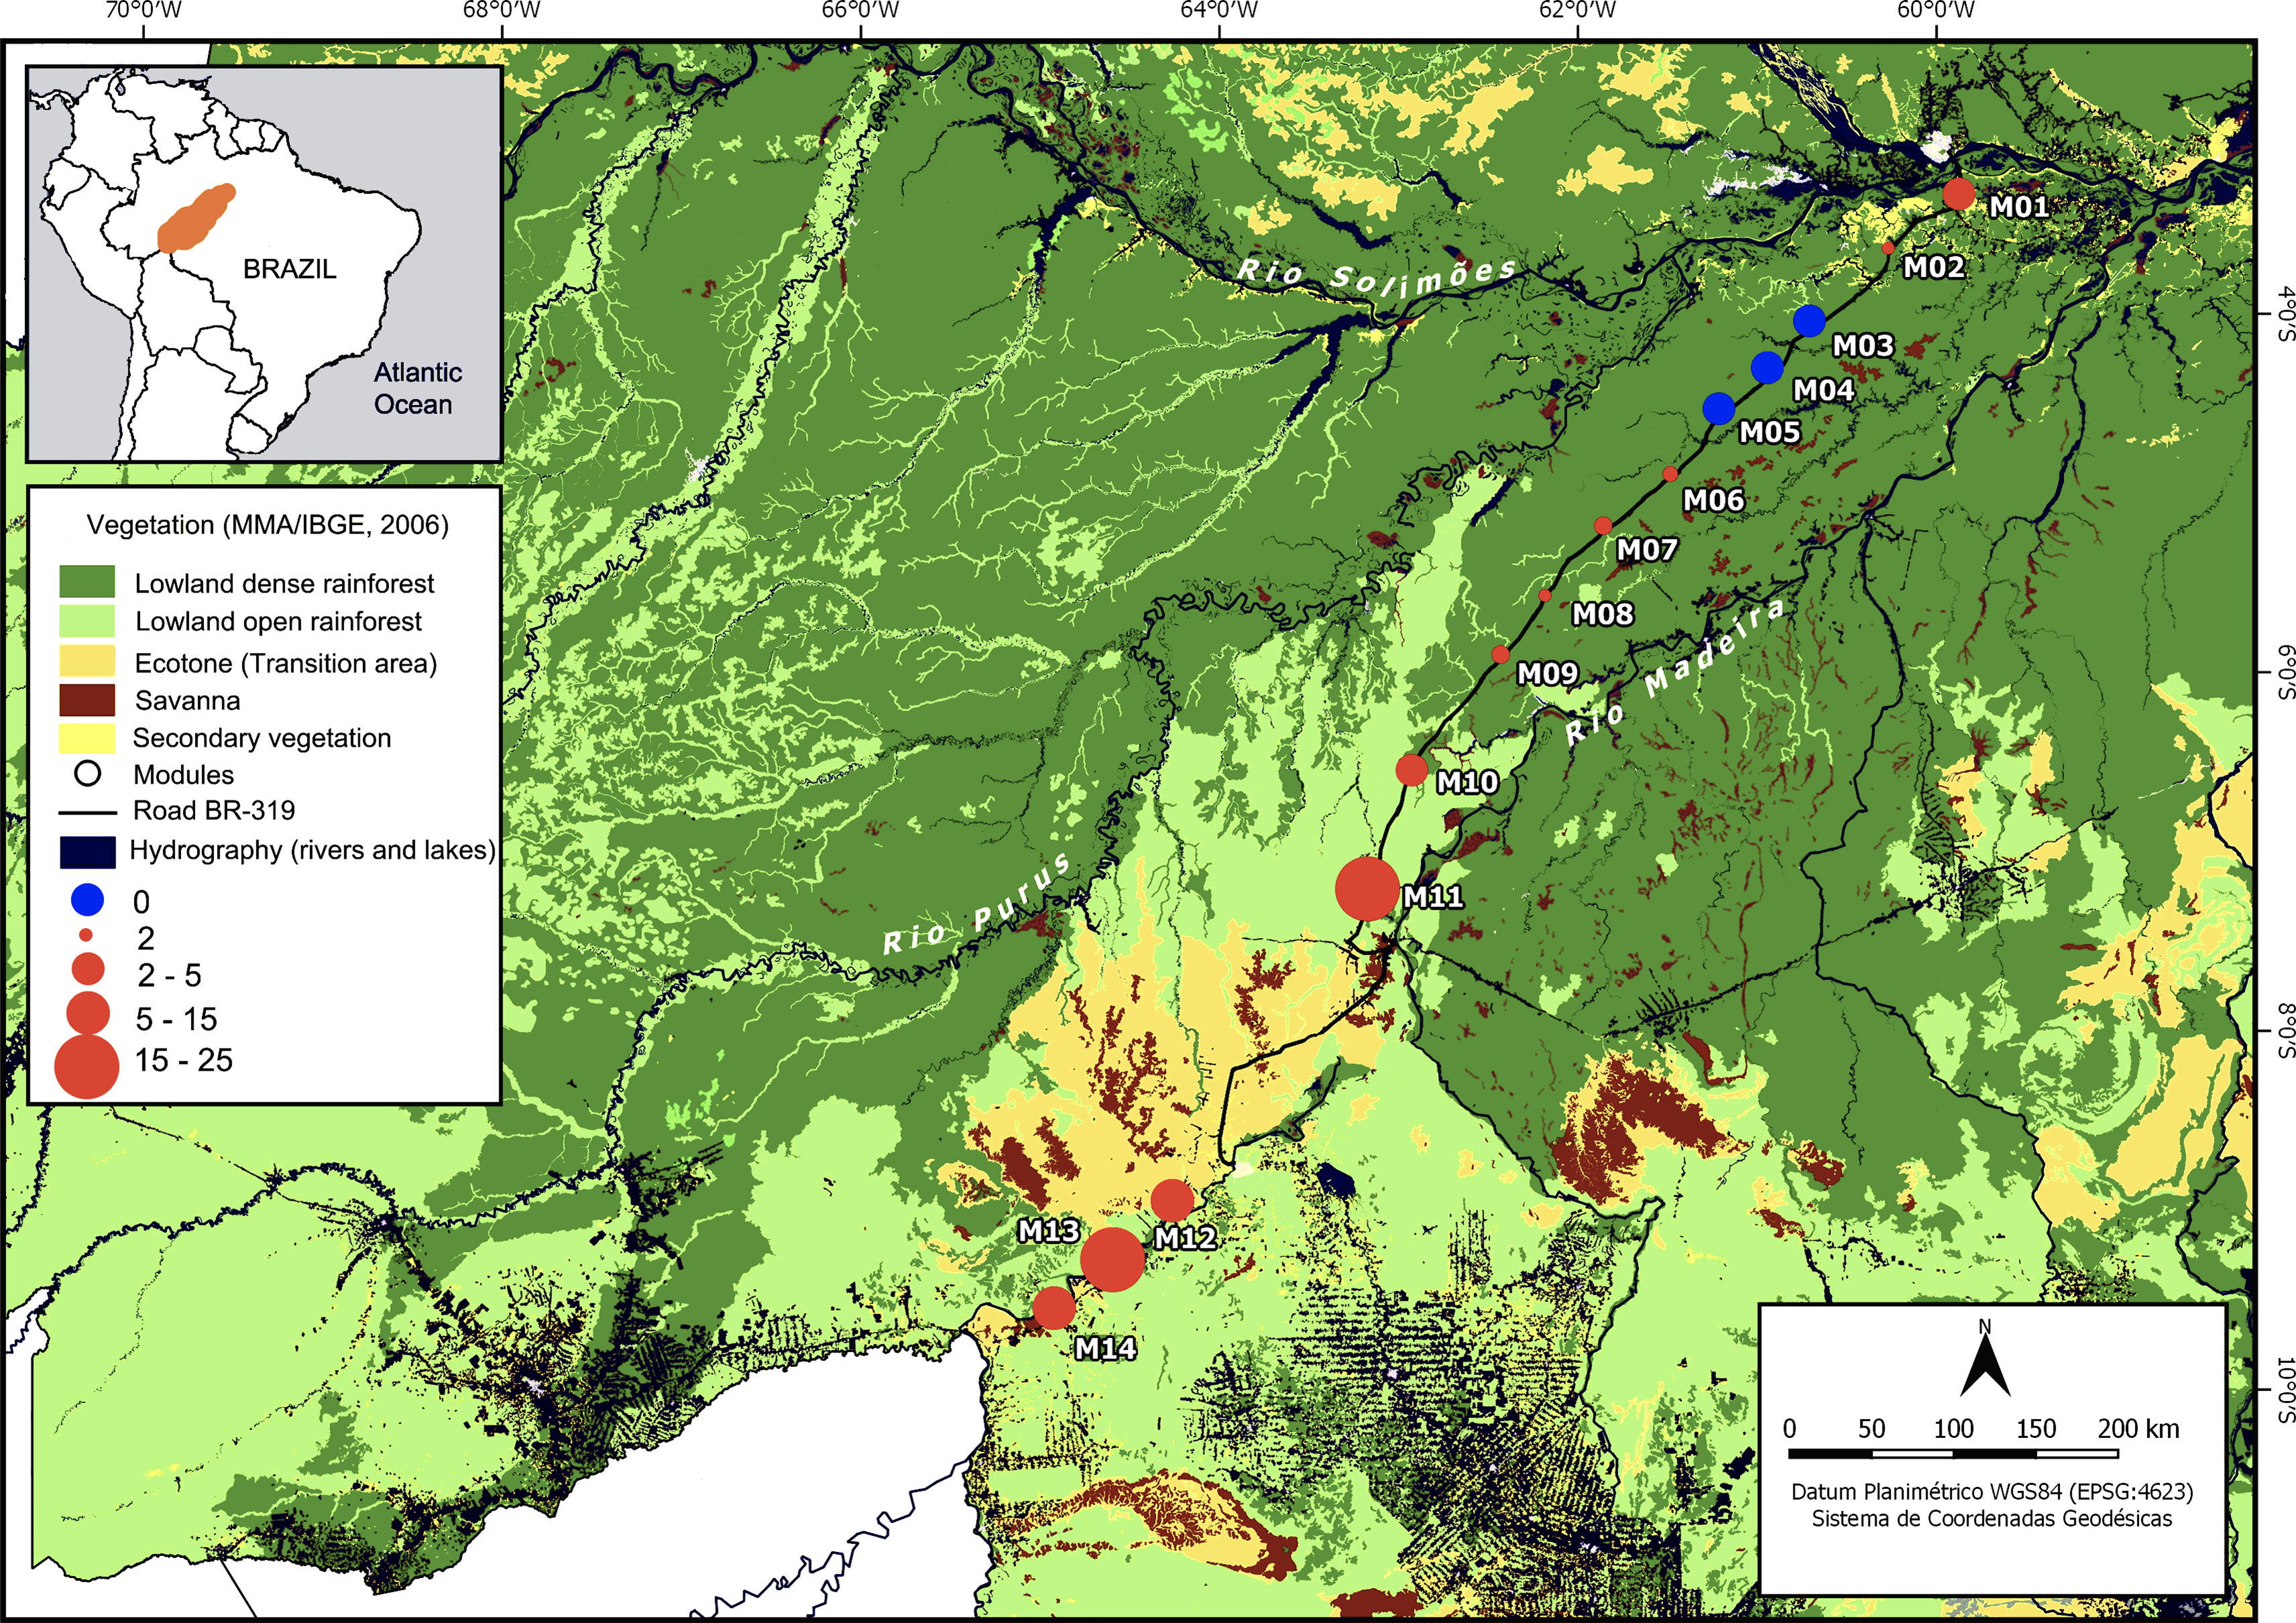 Soil and forest structure predicts large-scale patterns of